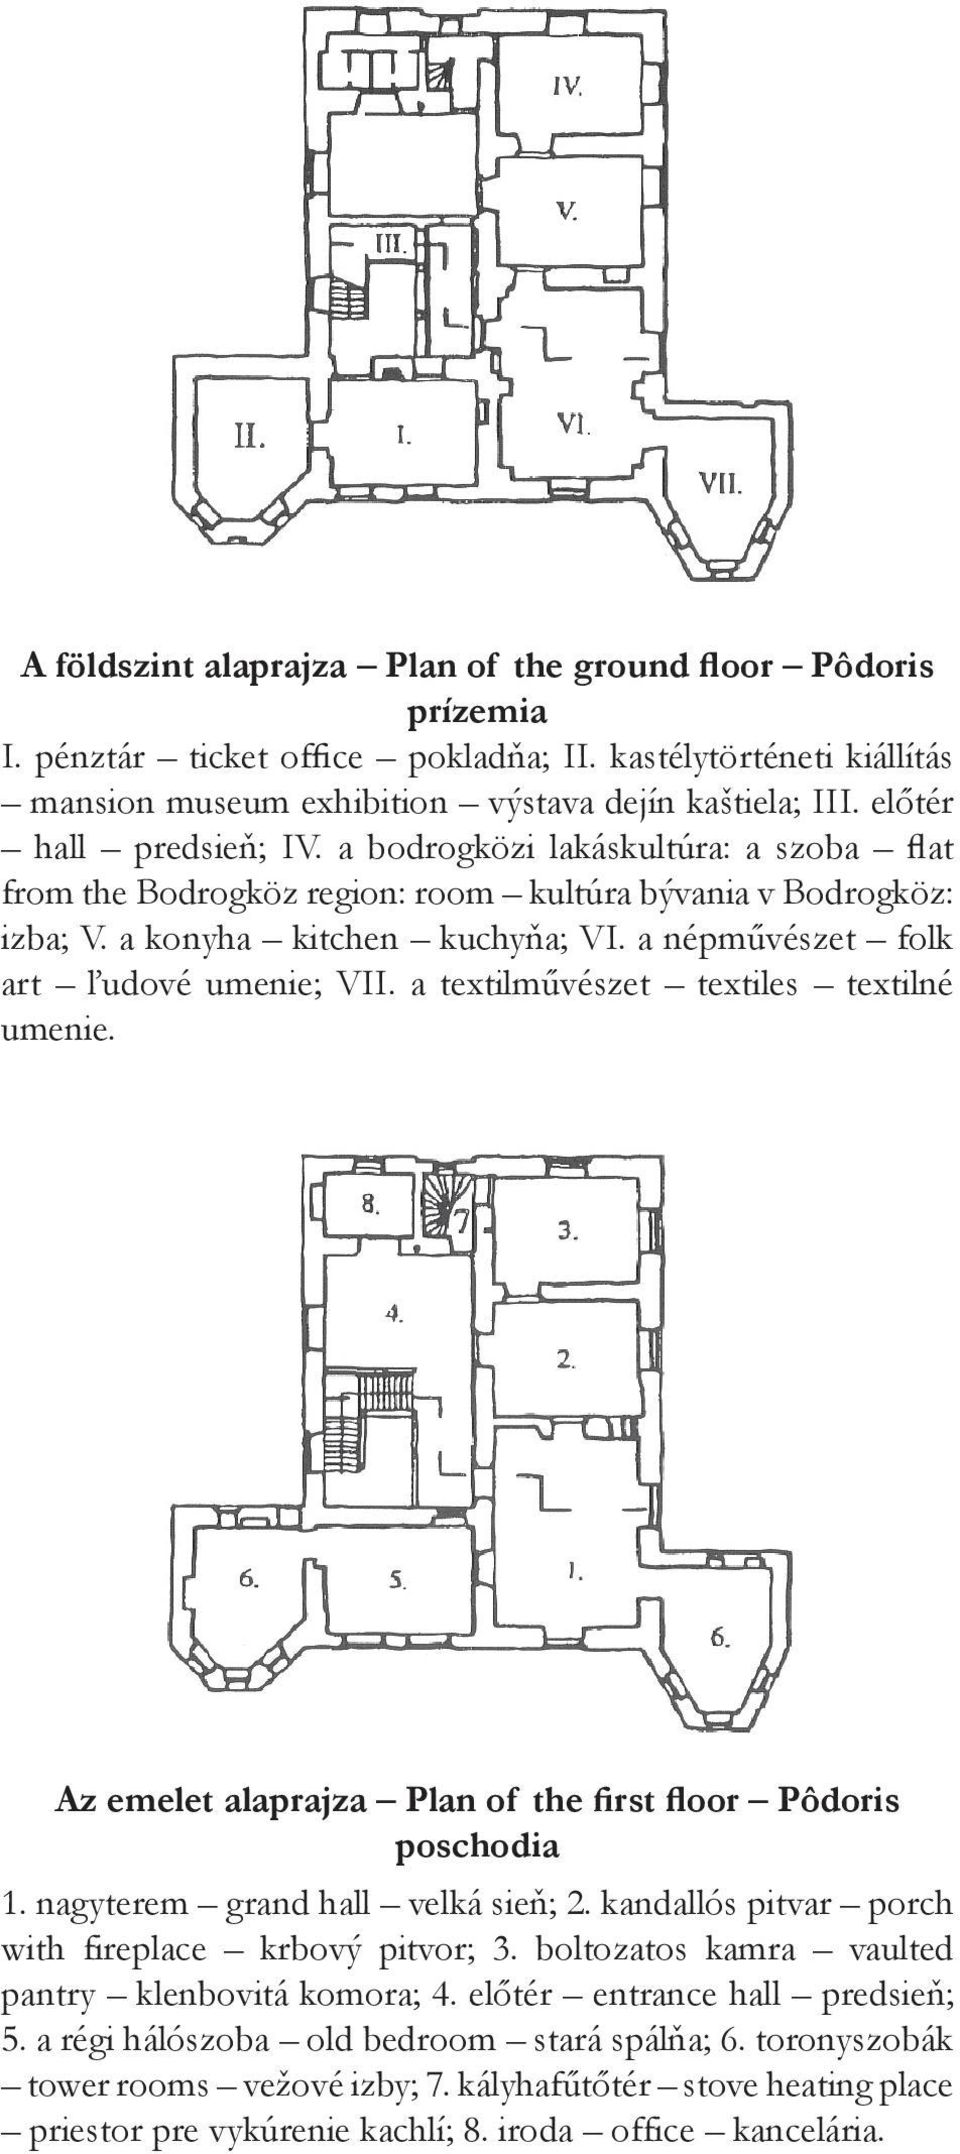 a népművészet folk art ľudové umenie; VII. a textilművészet textiles textilné umenie. Az emelet alaprajza Plan of the first floor Pôdoris poschodia 1. nagyterem grand hall velká sieň; 2.